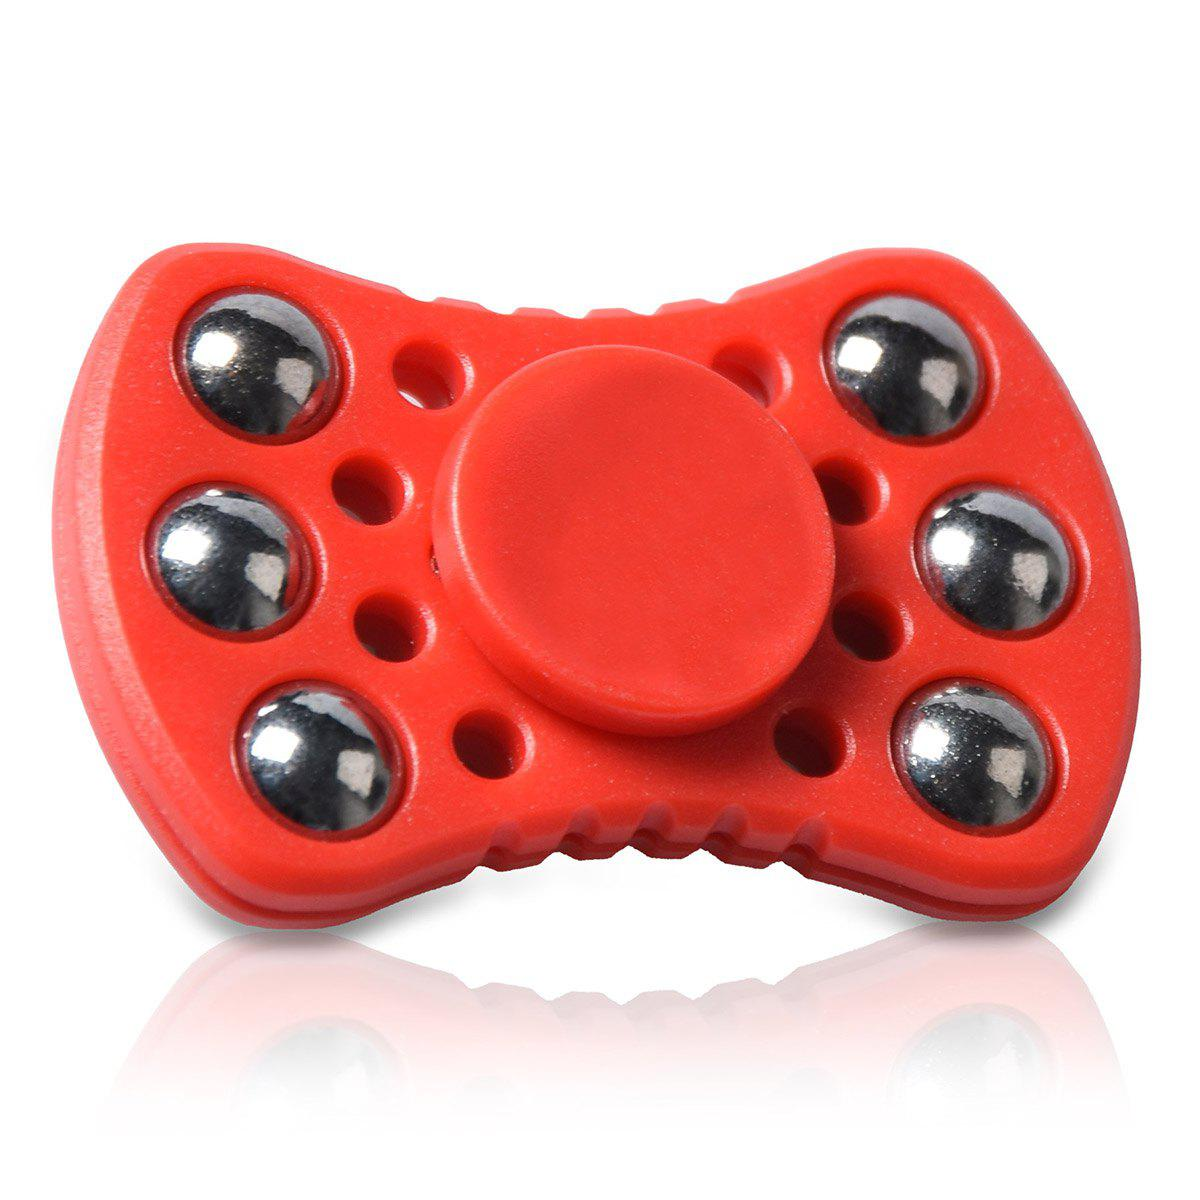 Roulement à billes anti-stress Fidget Spinner - Rouge